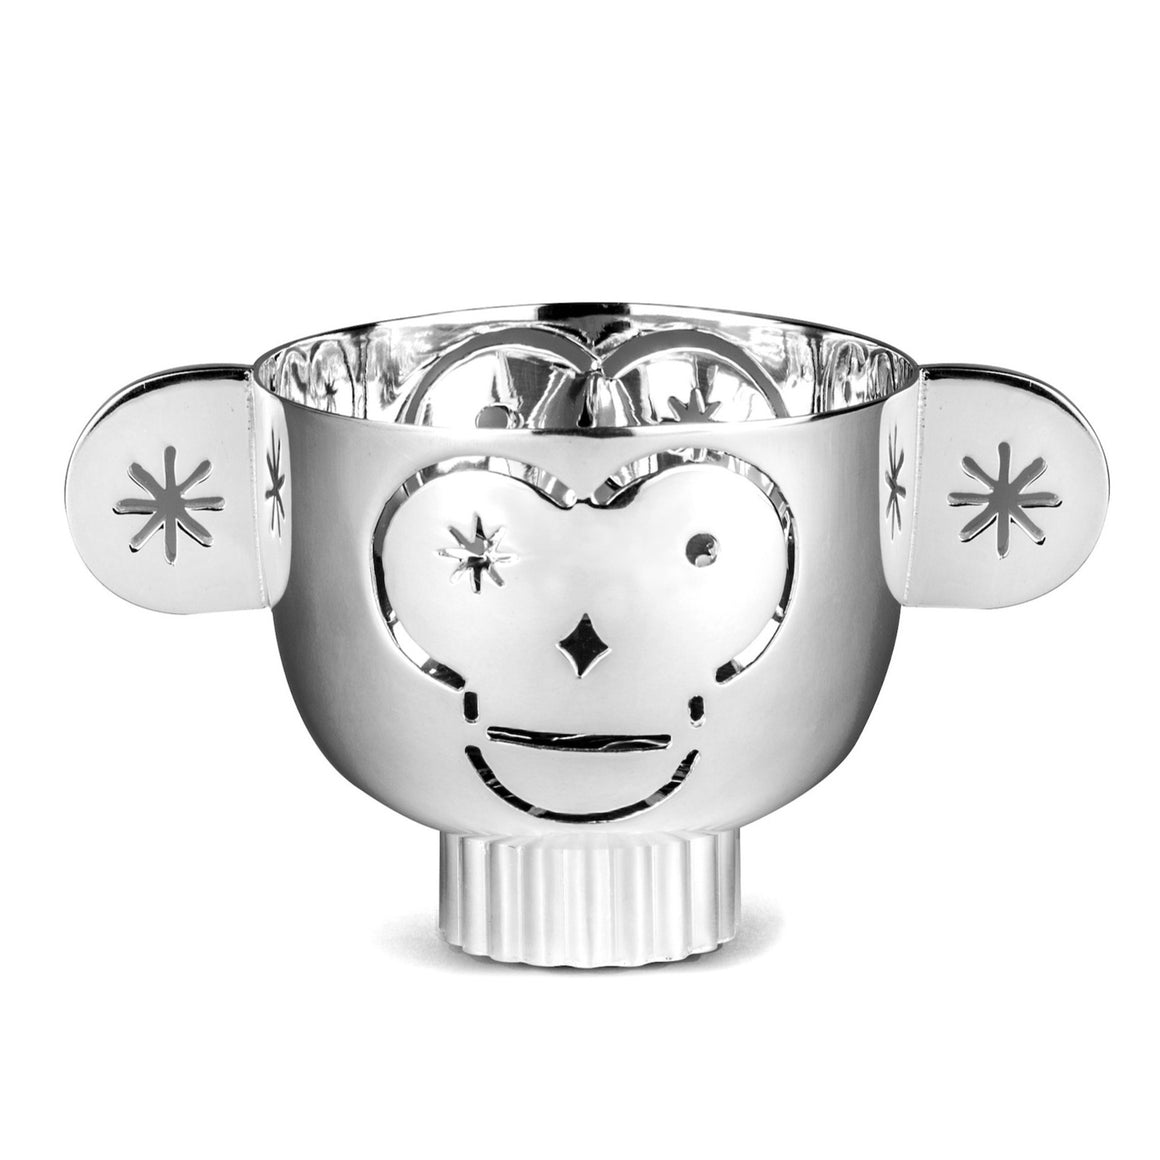 Monkos - Silver plated candle holder